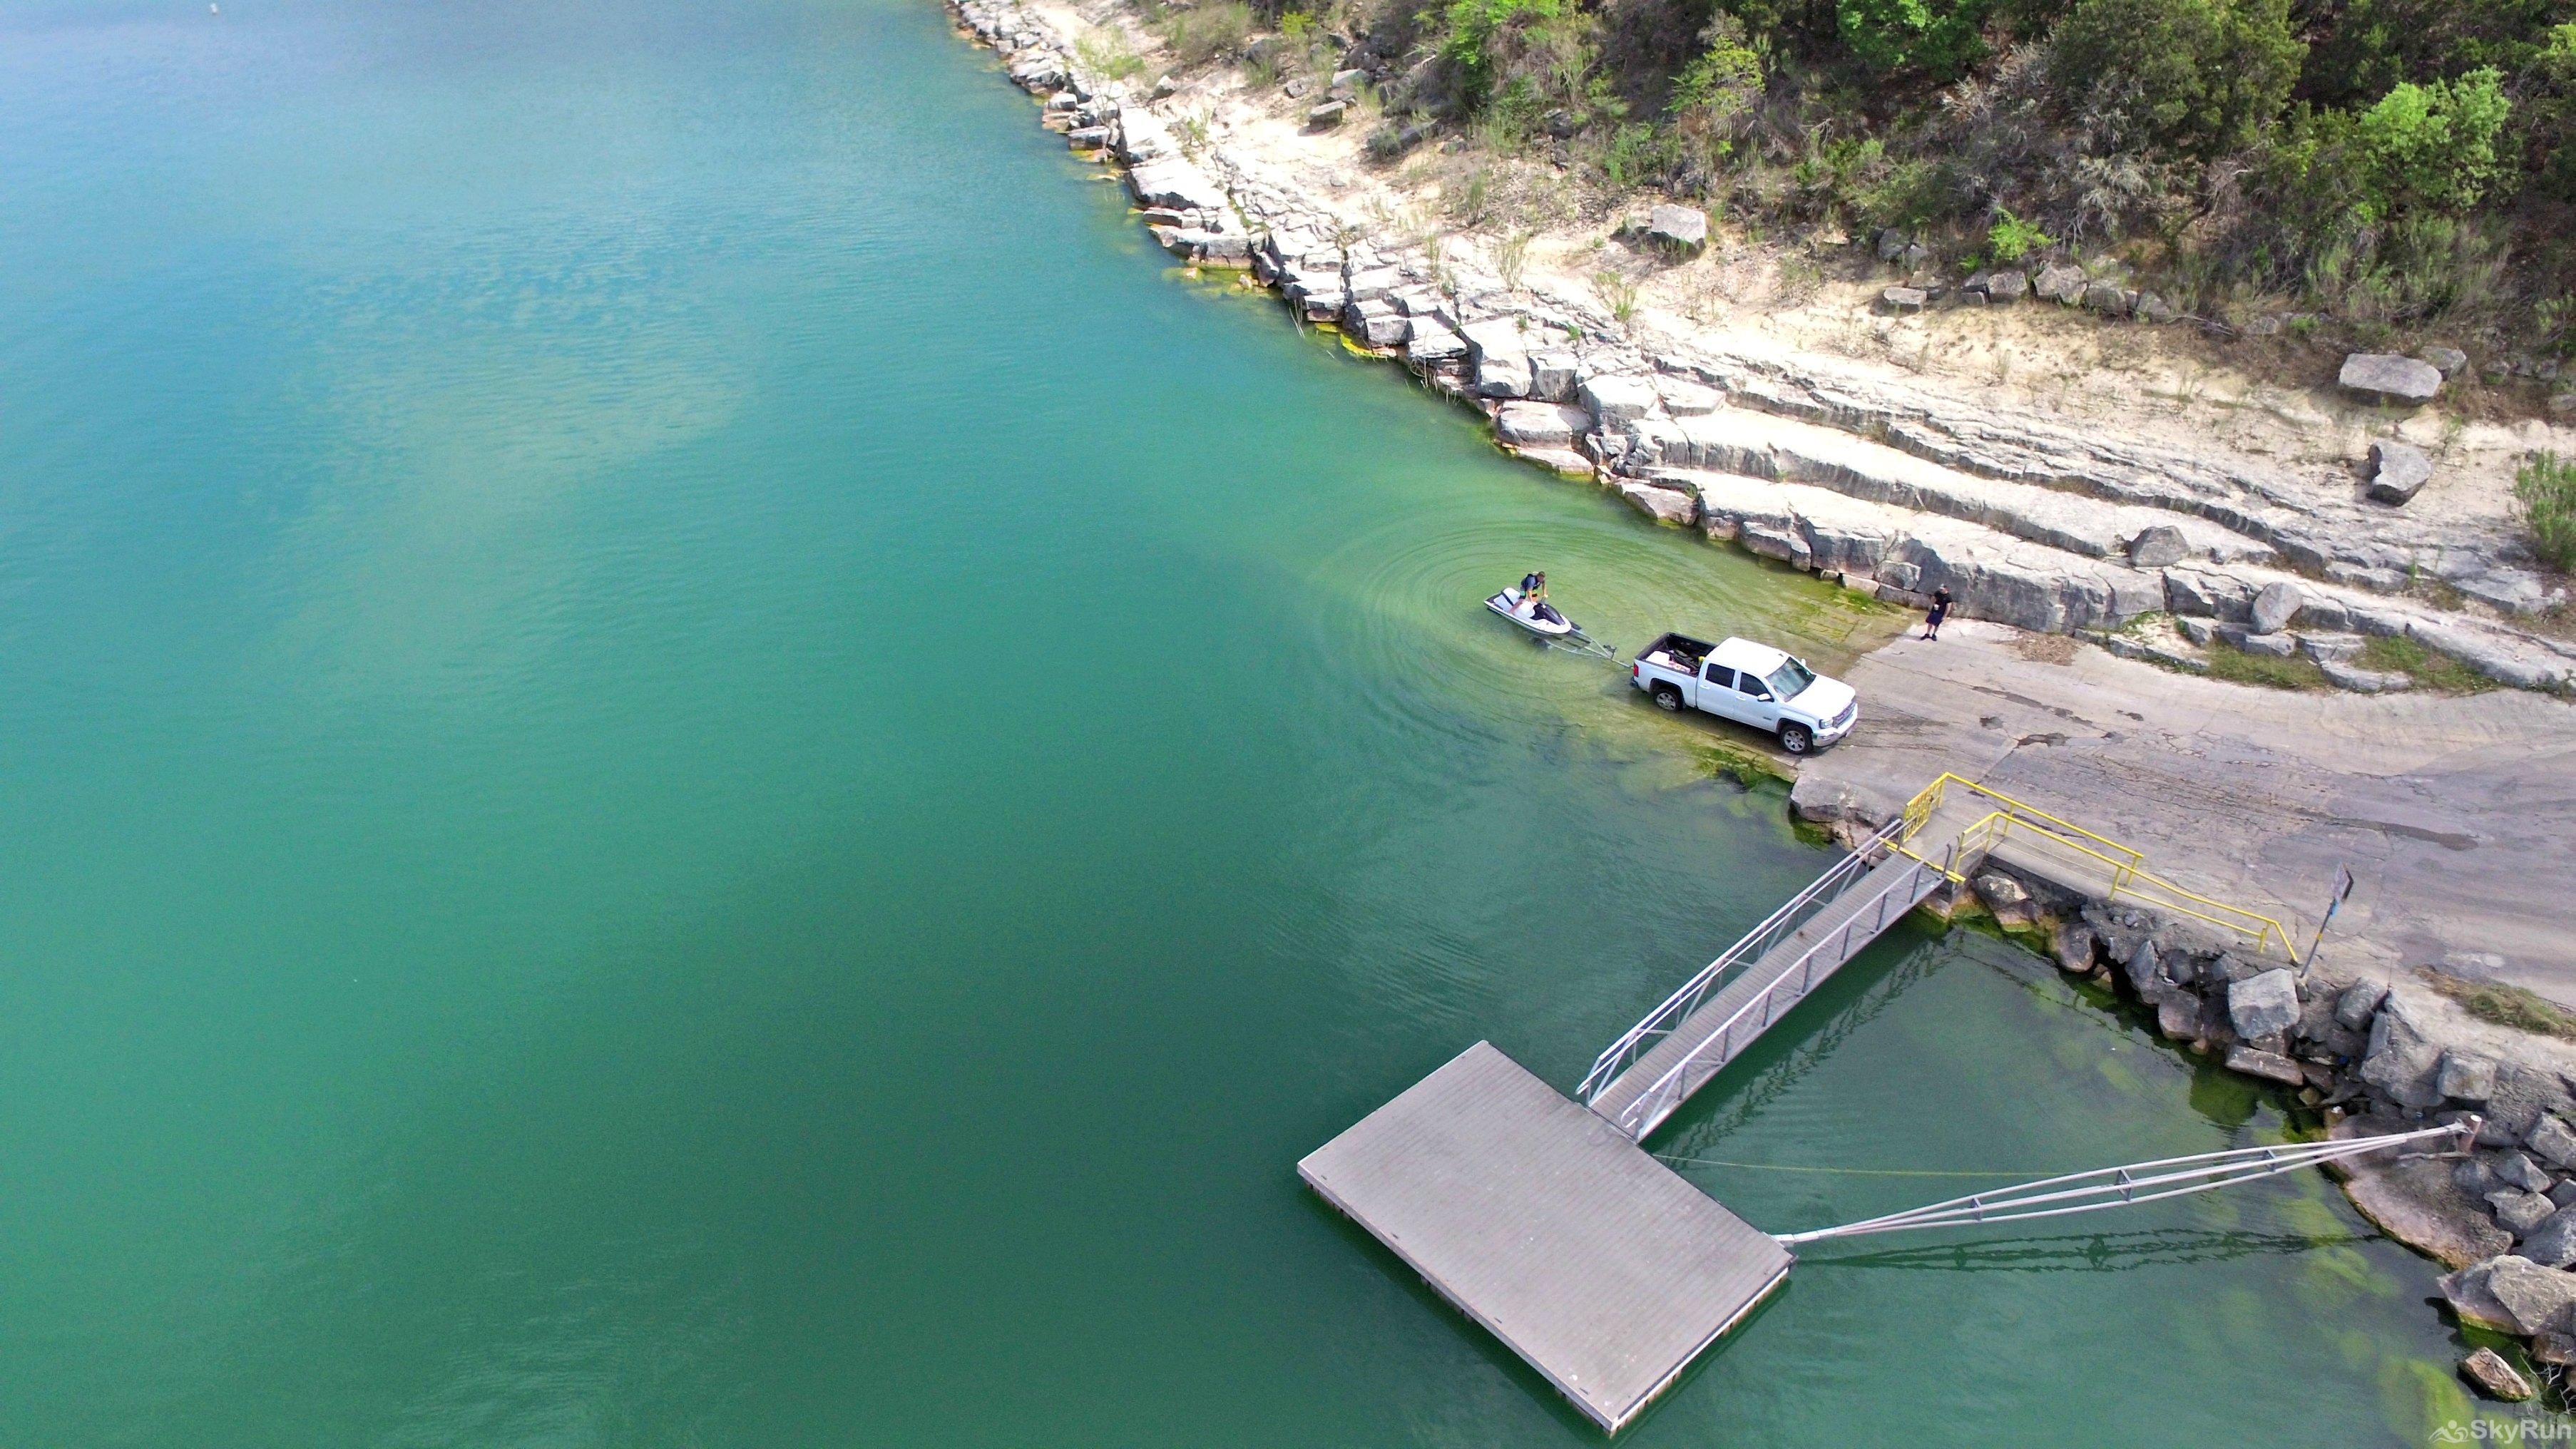 RIVENDELL LODGE Free, public boat ramp